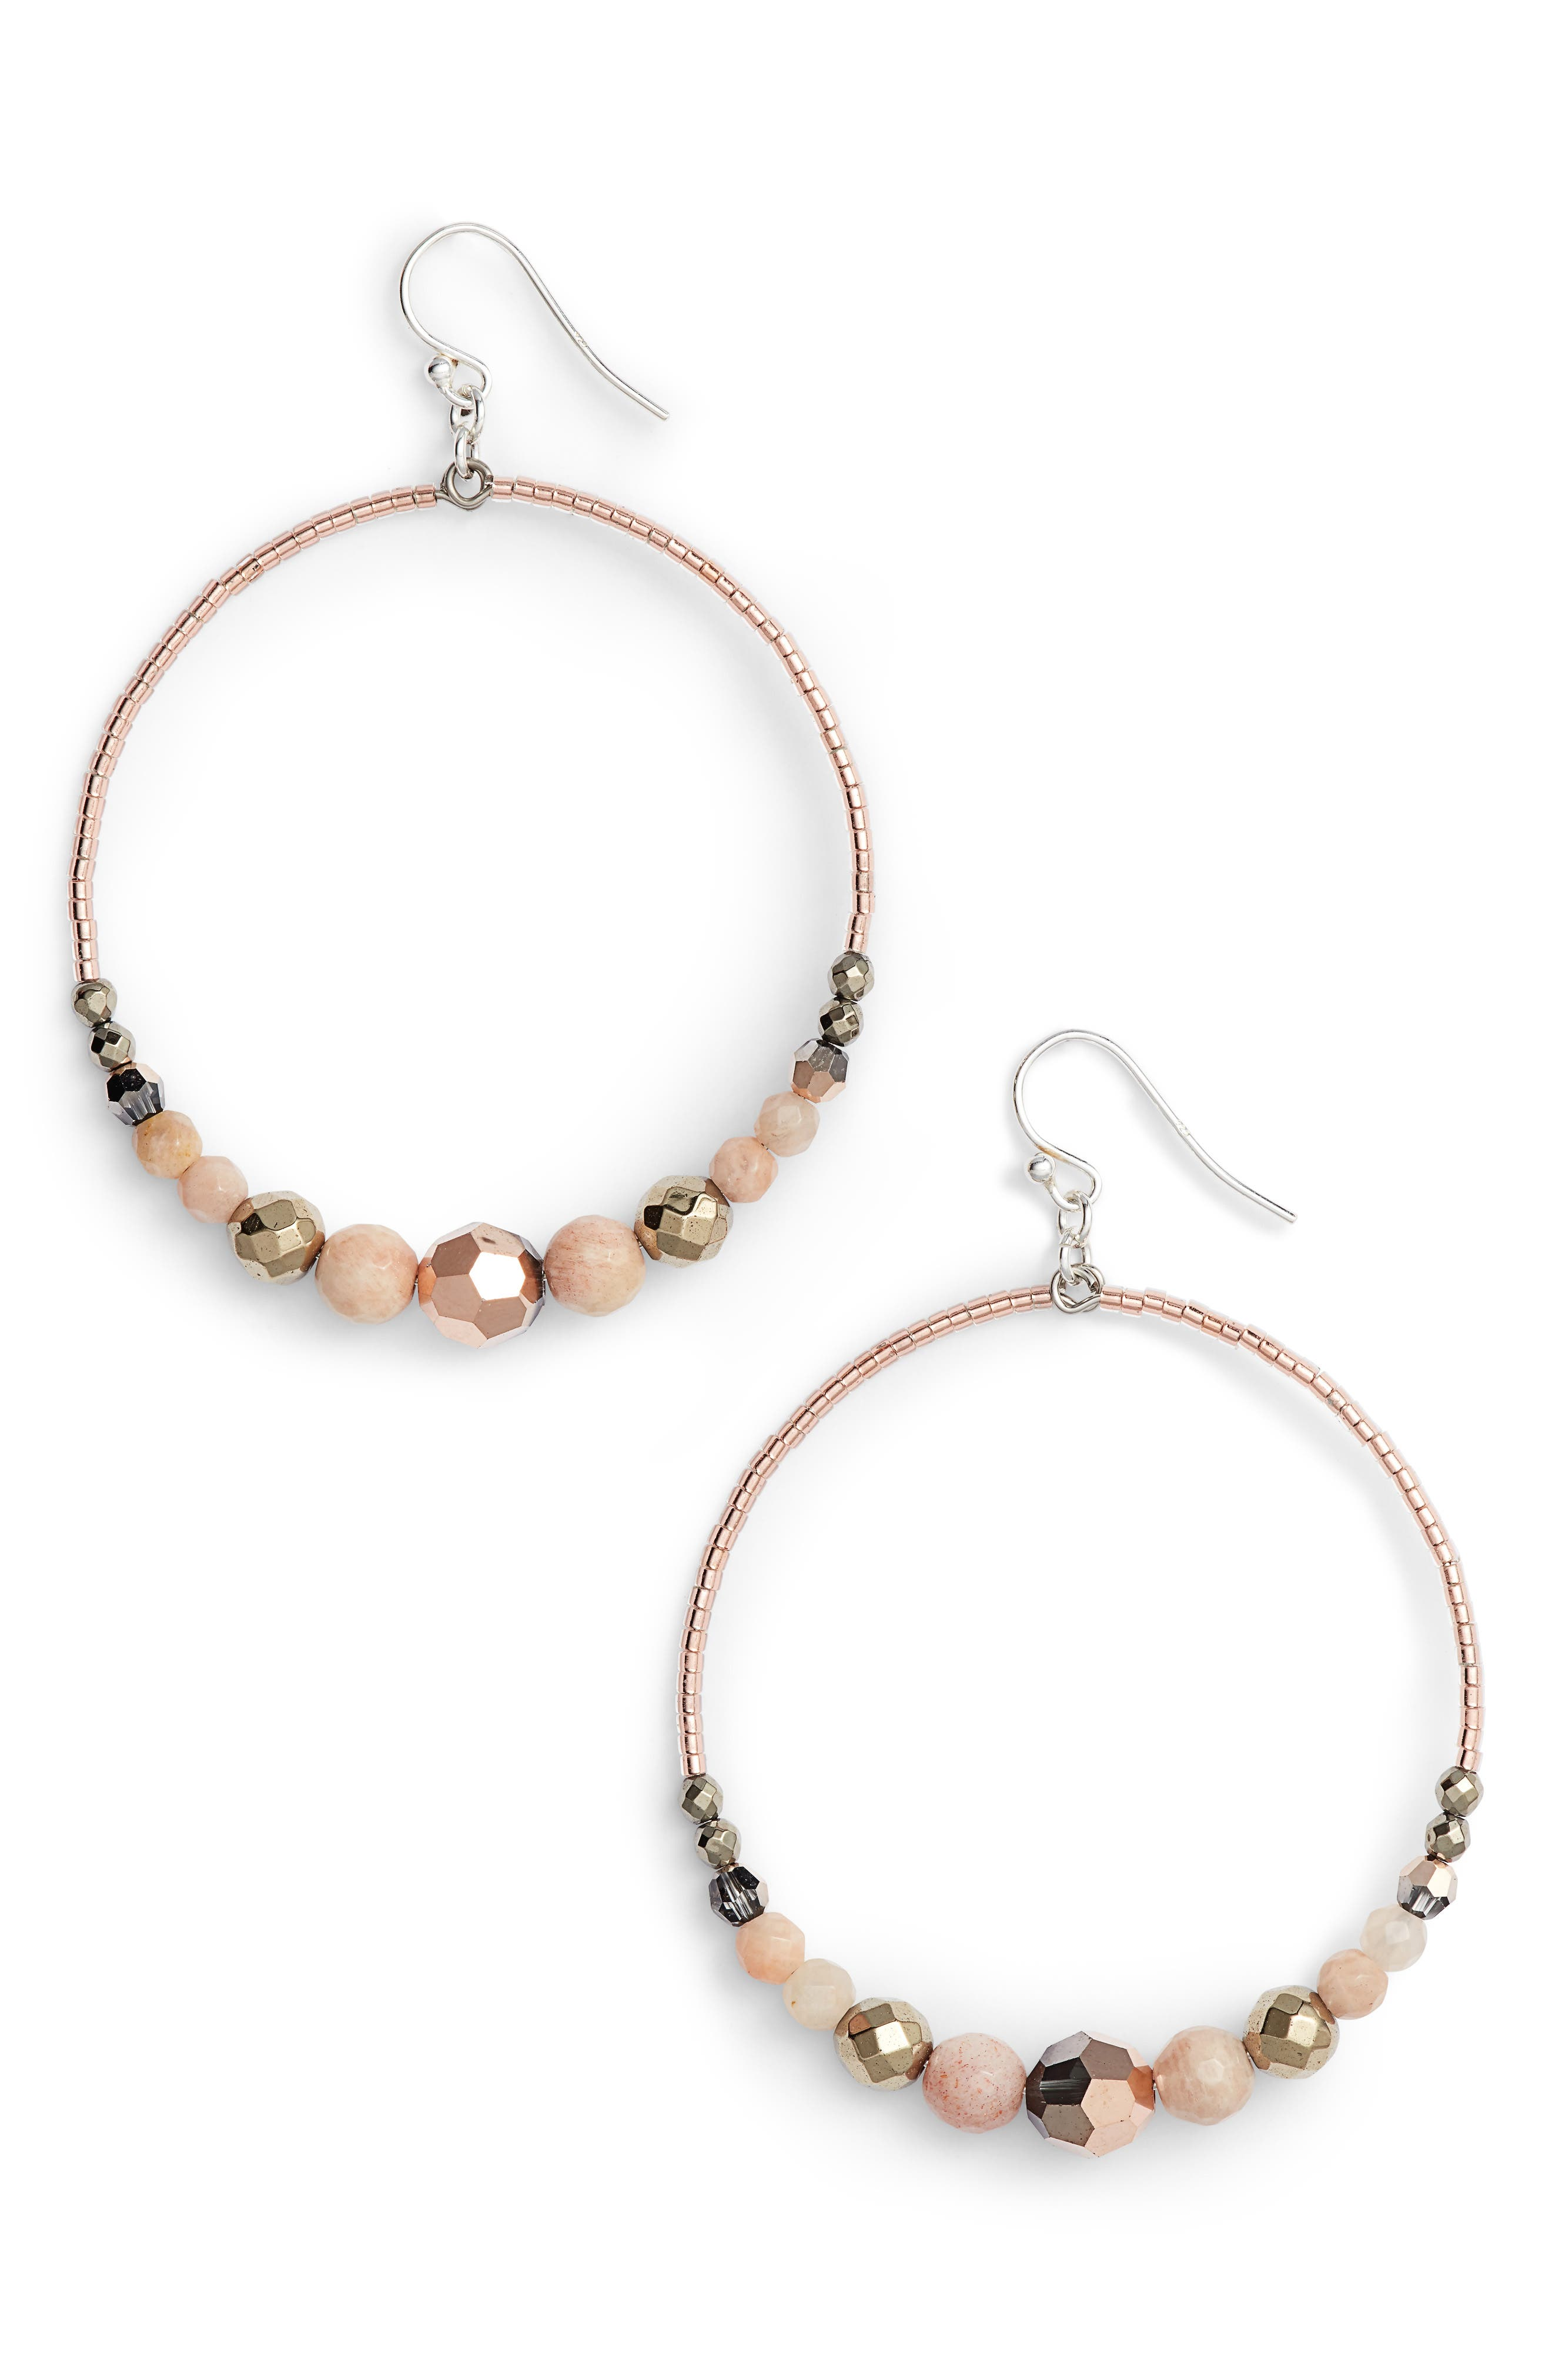 Semiprecious Stone Frontal Hoop Earrings,                         Main,                         color, SUNSTONE MIX